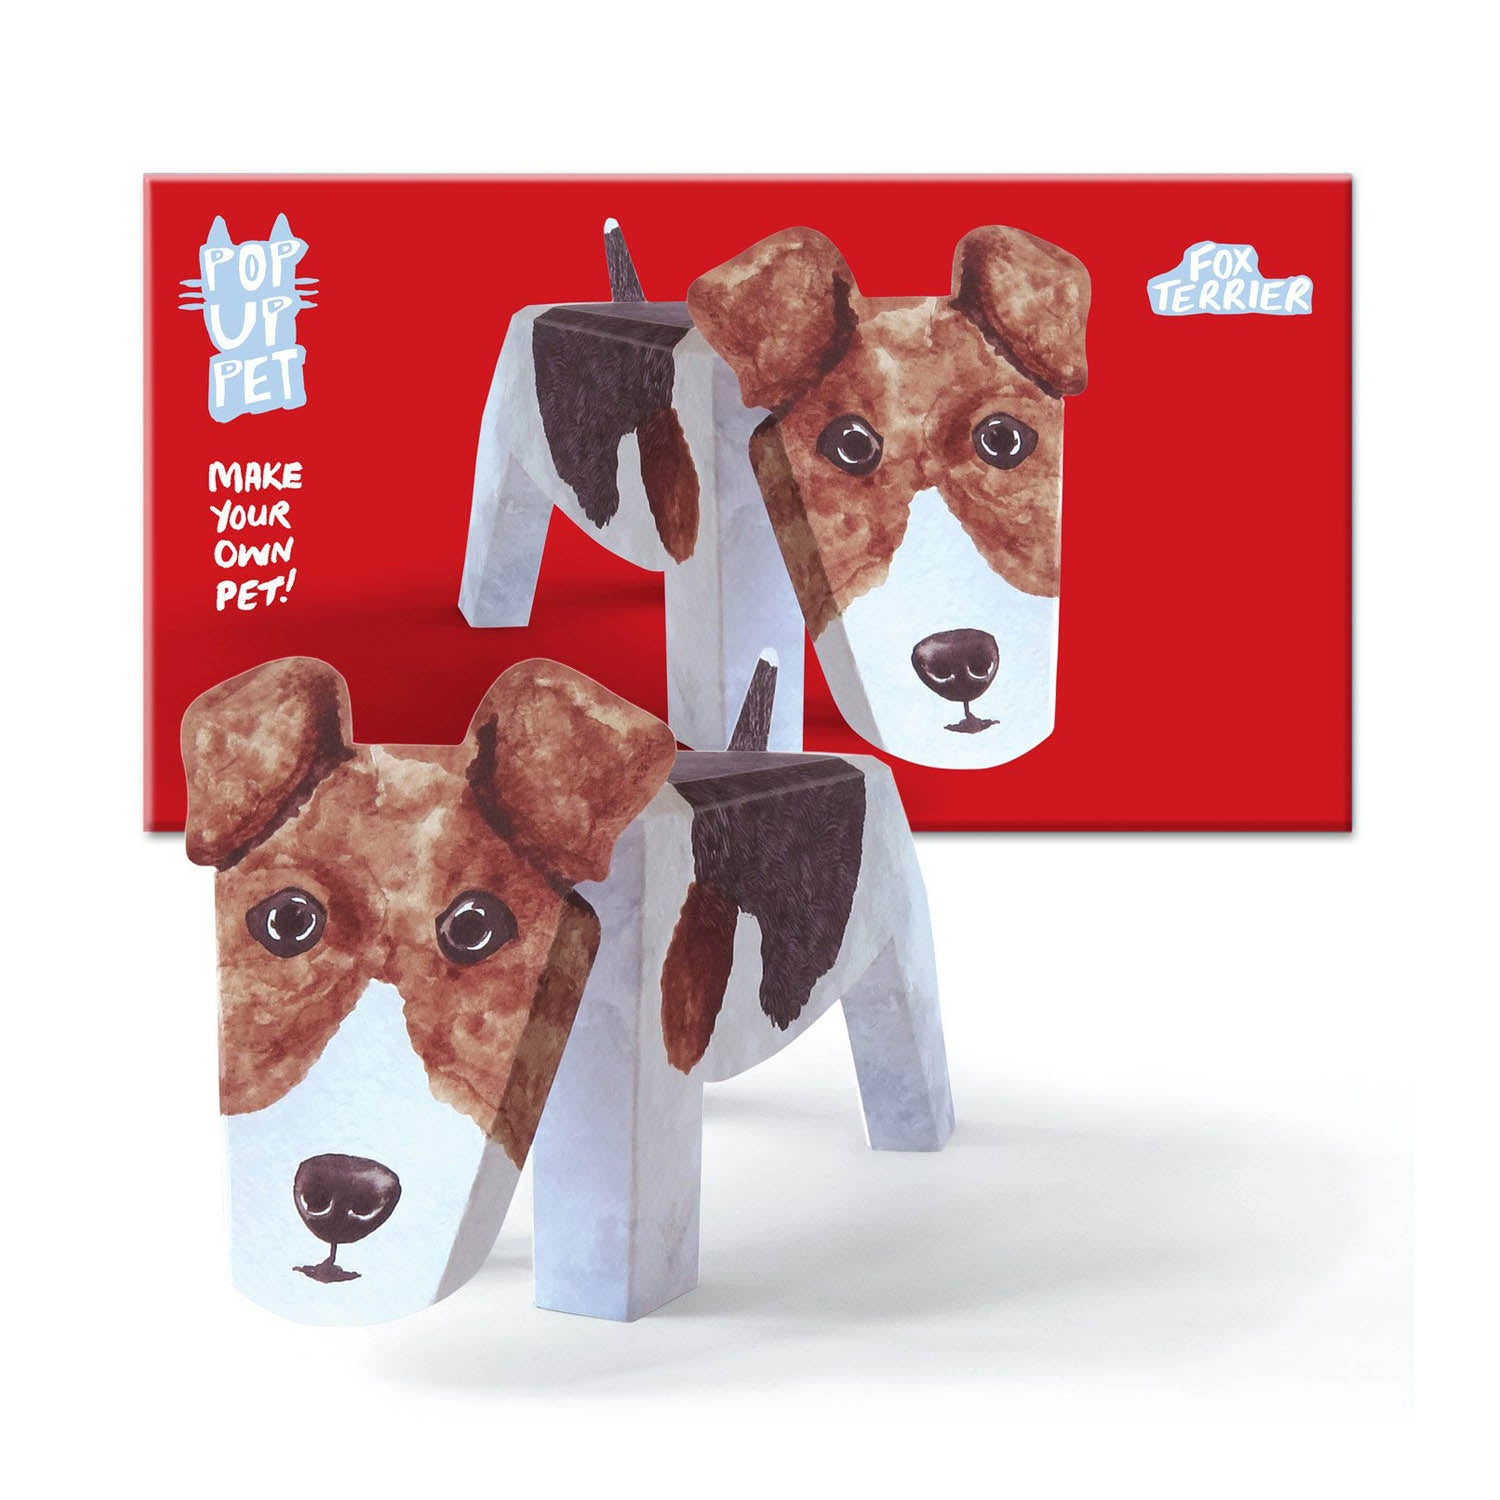 Dog Krazy Gifts - Fox Terrier Pop Up Pet, part of the range of  Rosie Flo Pop Up Pets available from DogKrazyGifts.co.uk